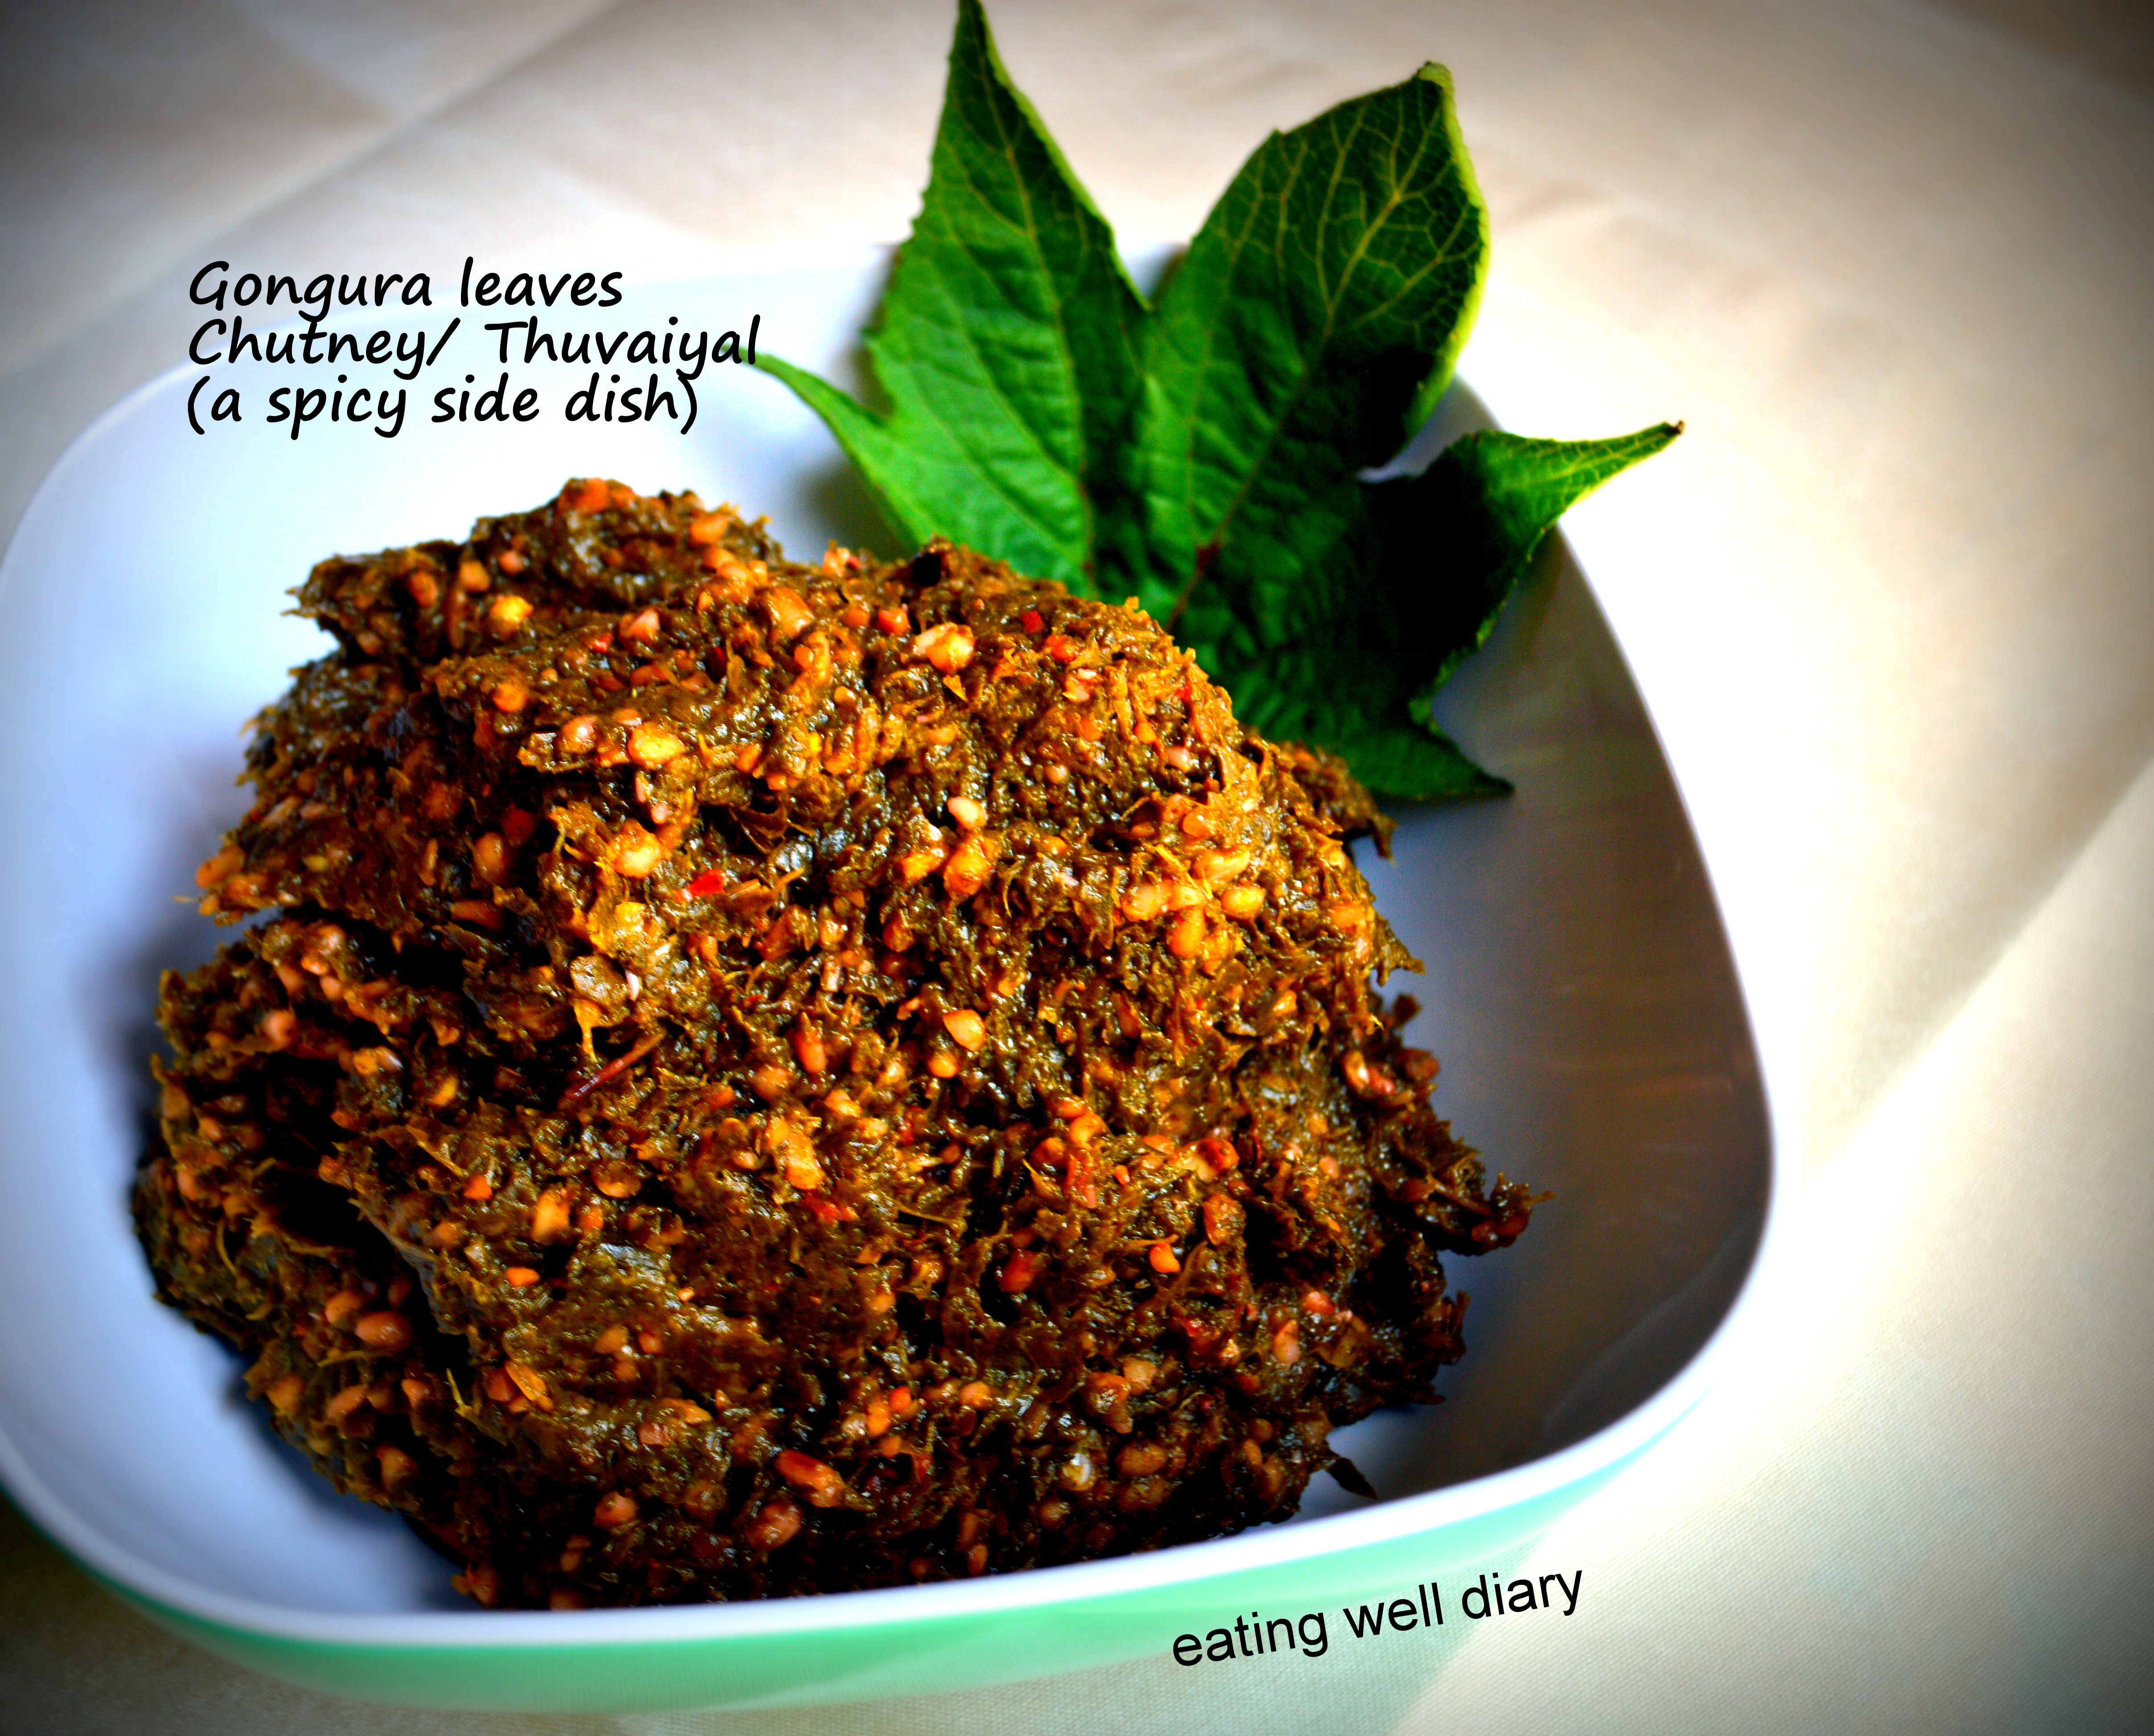 Gongura leaves Chutney or Thuvaiyal with A Healthy Tip! – DFT